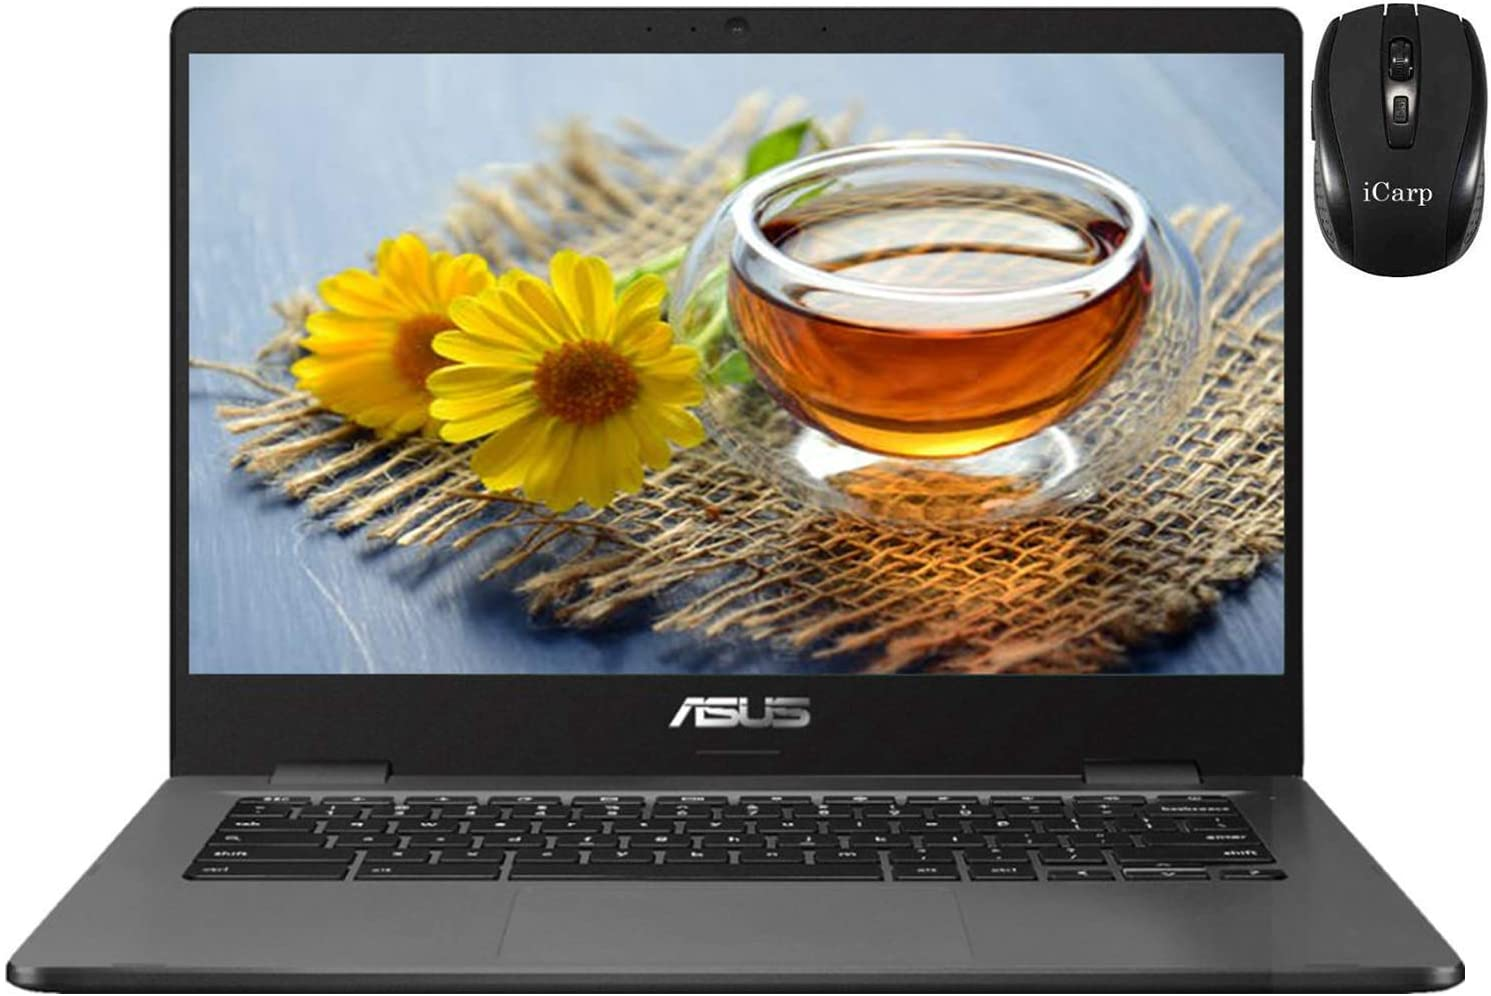 Flagship 2020 ASUS Chromebook 14 Thin Light Weight Laptop 14